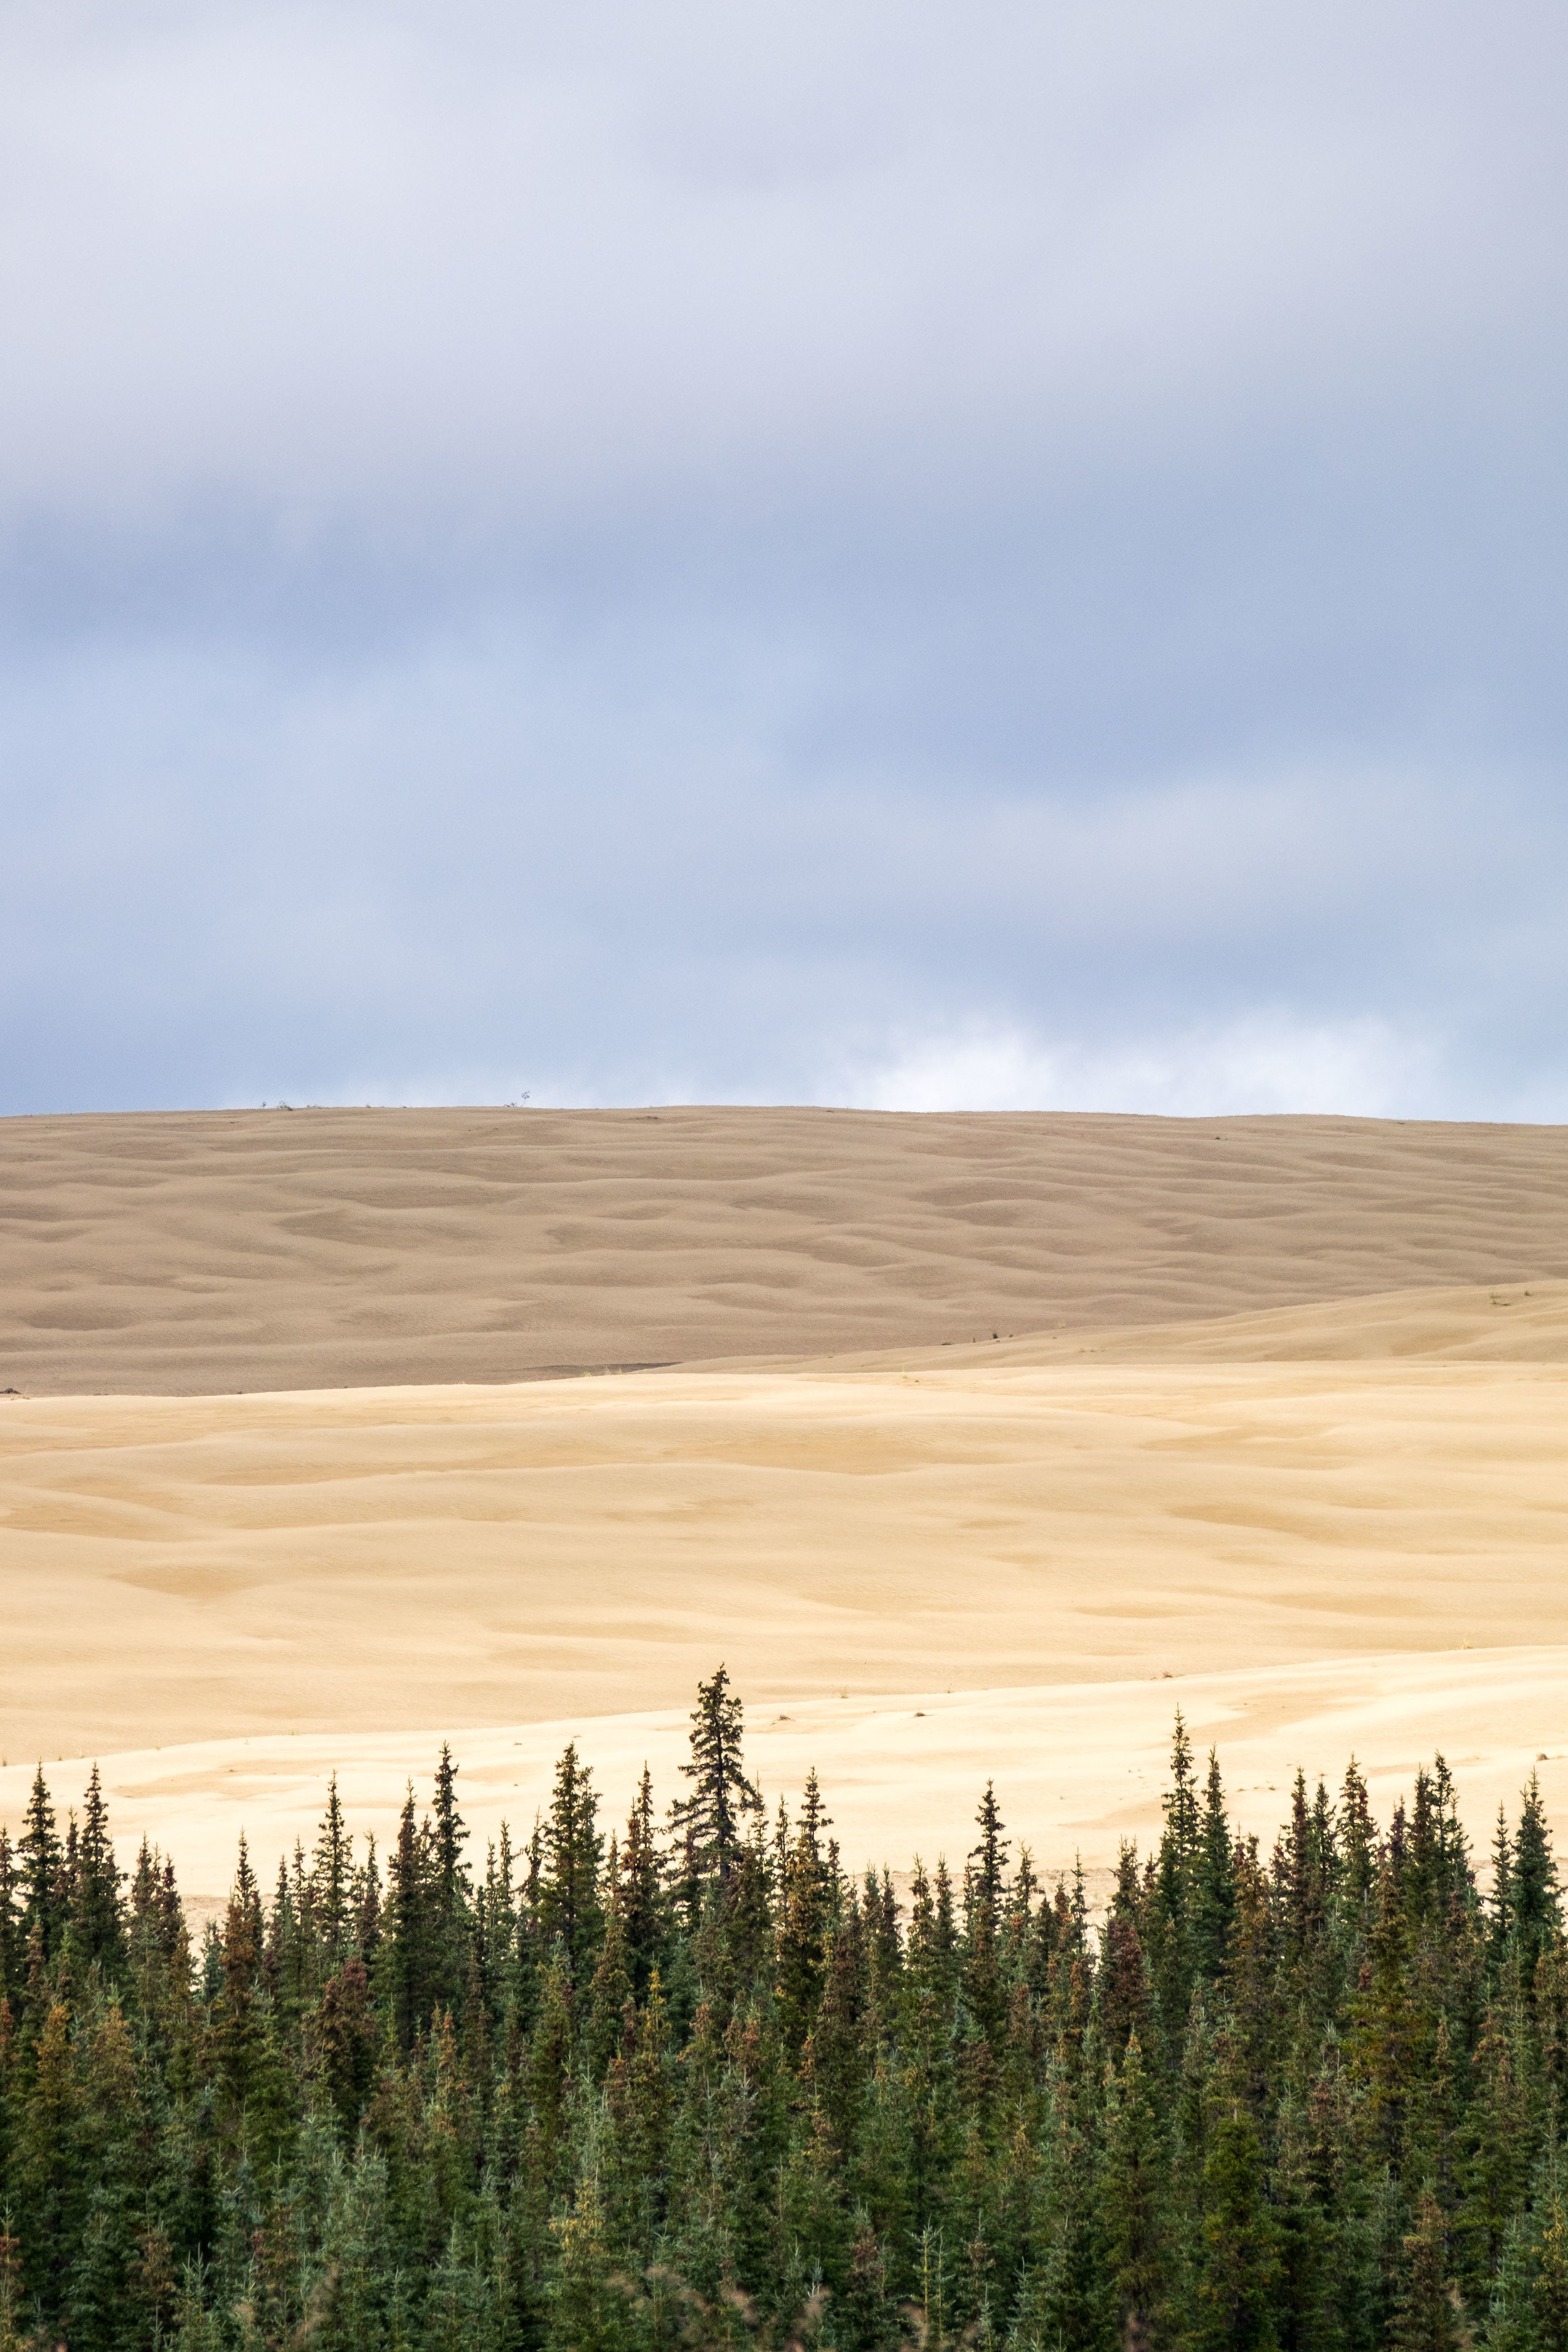 The contrast between forest and dunes really fascinated me the entire time we were here.